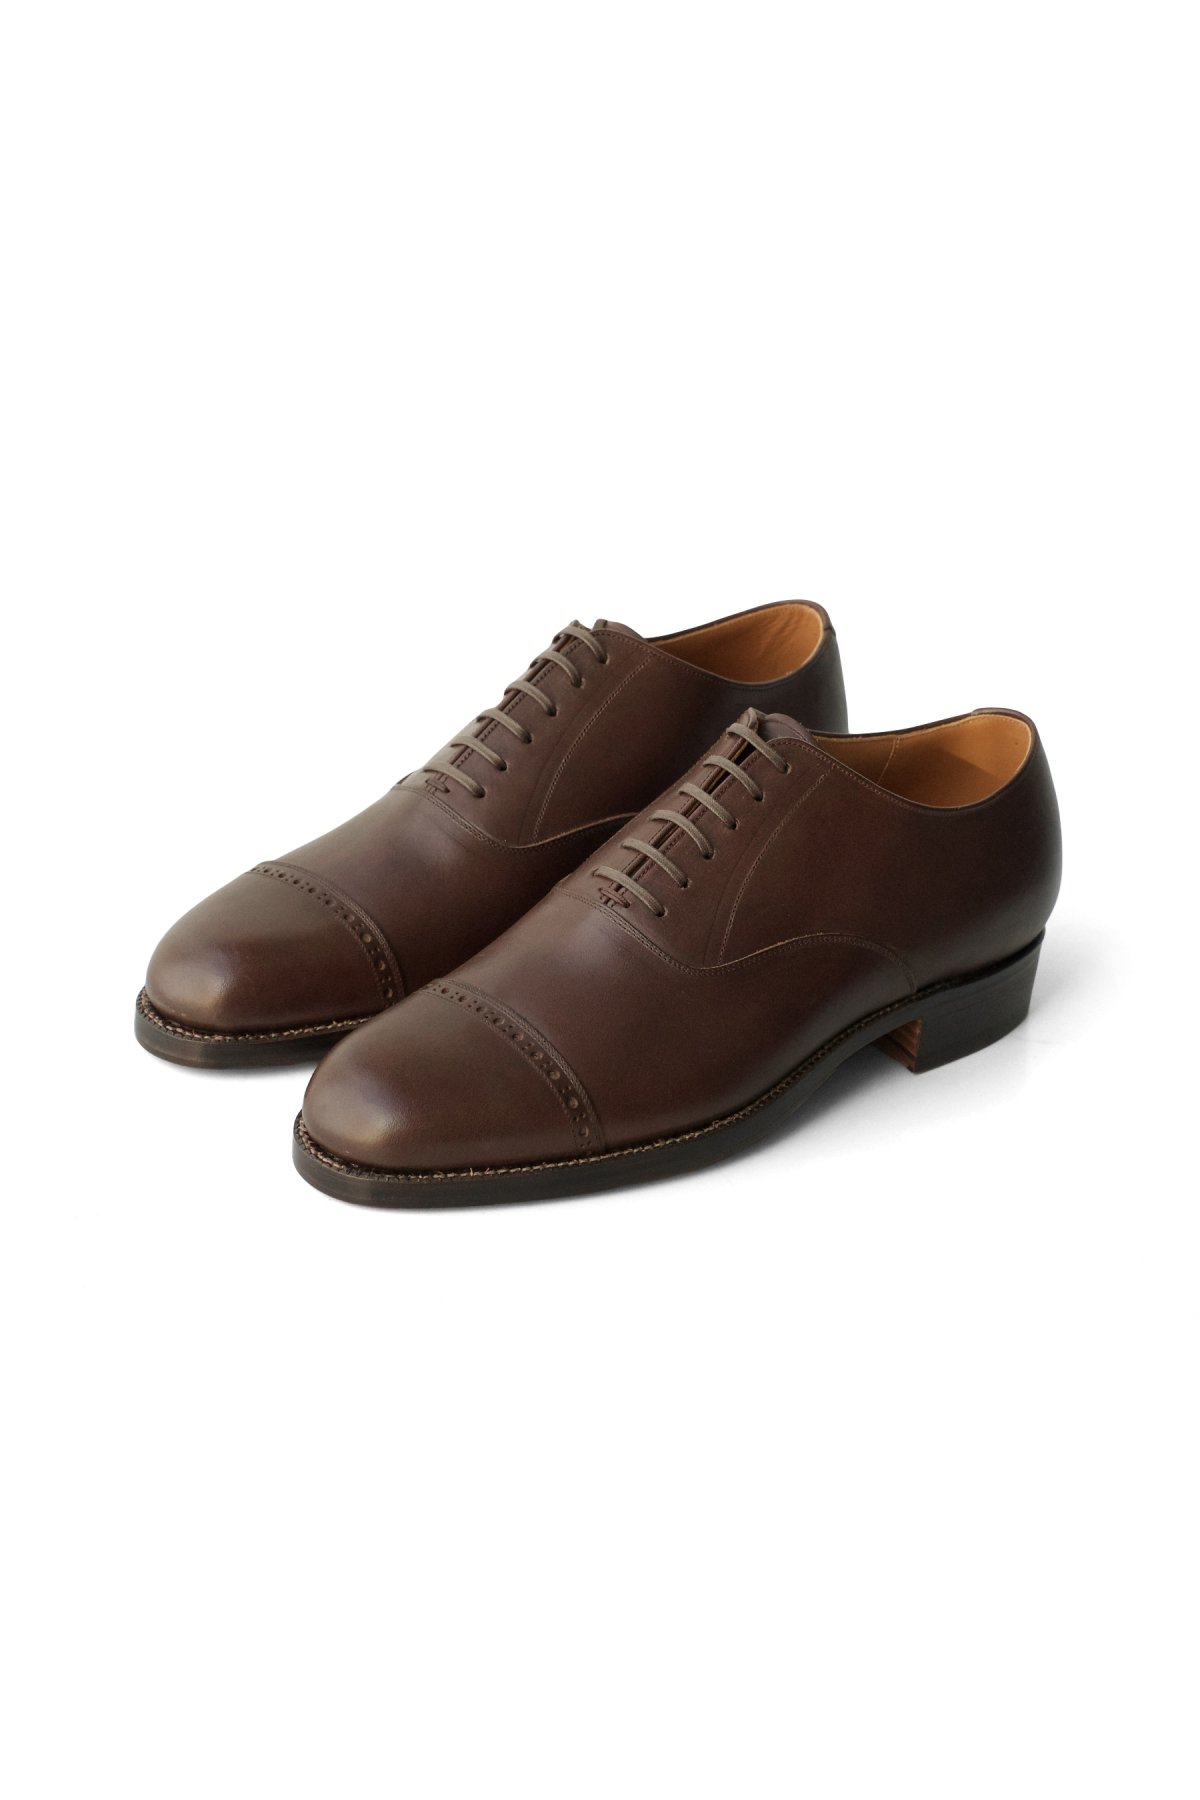 "OLD JOE - ""The Banker"" VACHETTA LEATHER CAP TOE SHOES BROWN PRICE 77,000 tax-in"